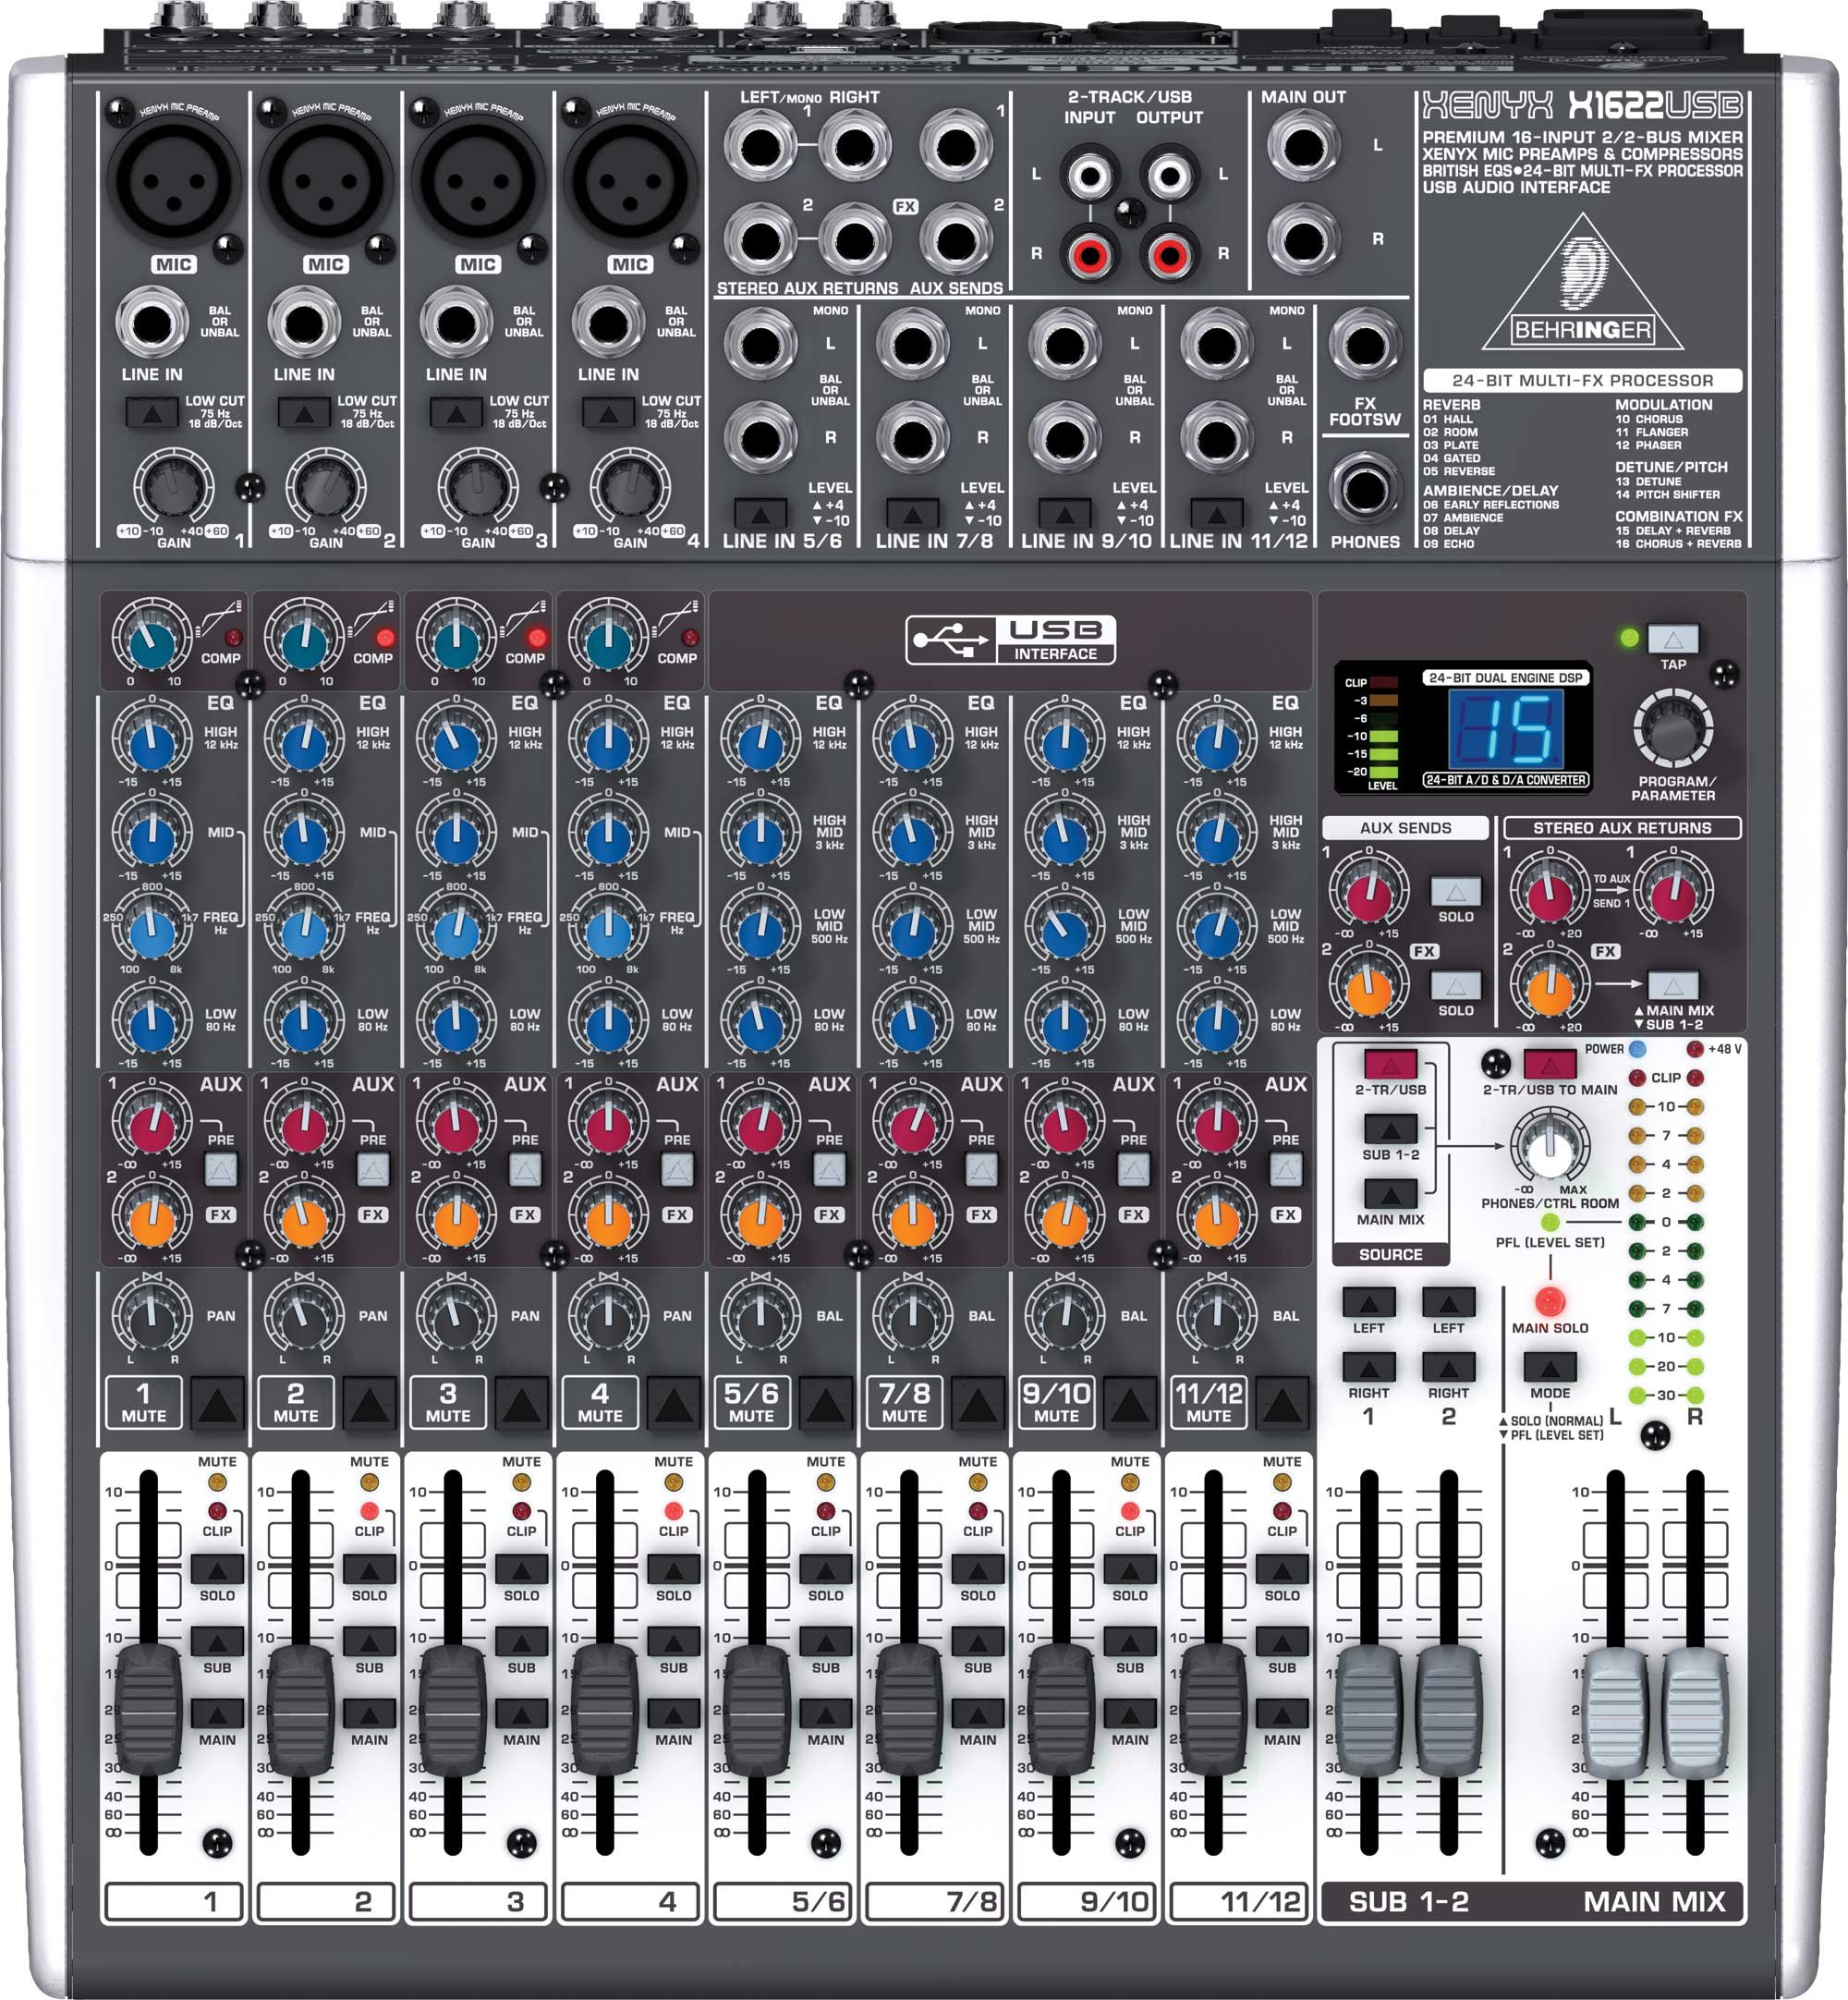 Behringer XENYX X1622USB 16 Input 2/2 Bus Mixer with USB, energyXT2.5 Software, 24-Bit Multi-FX Processor XENYX-X1622USB